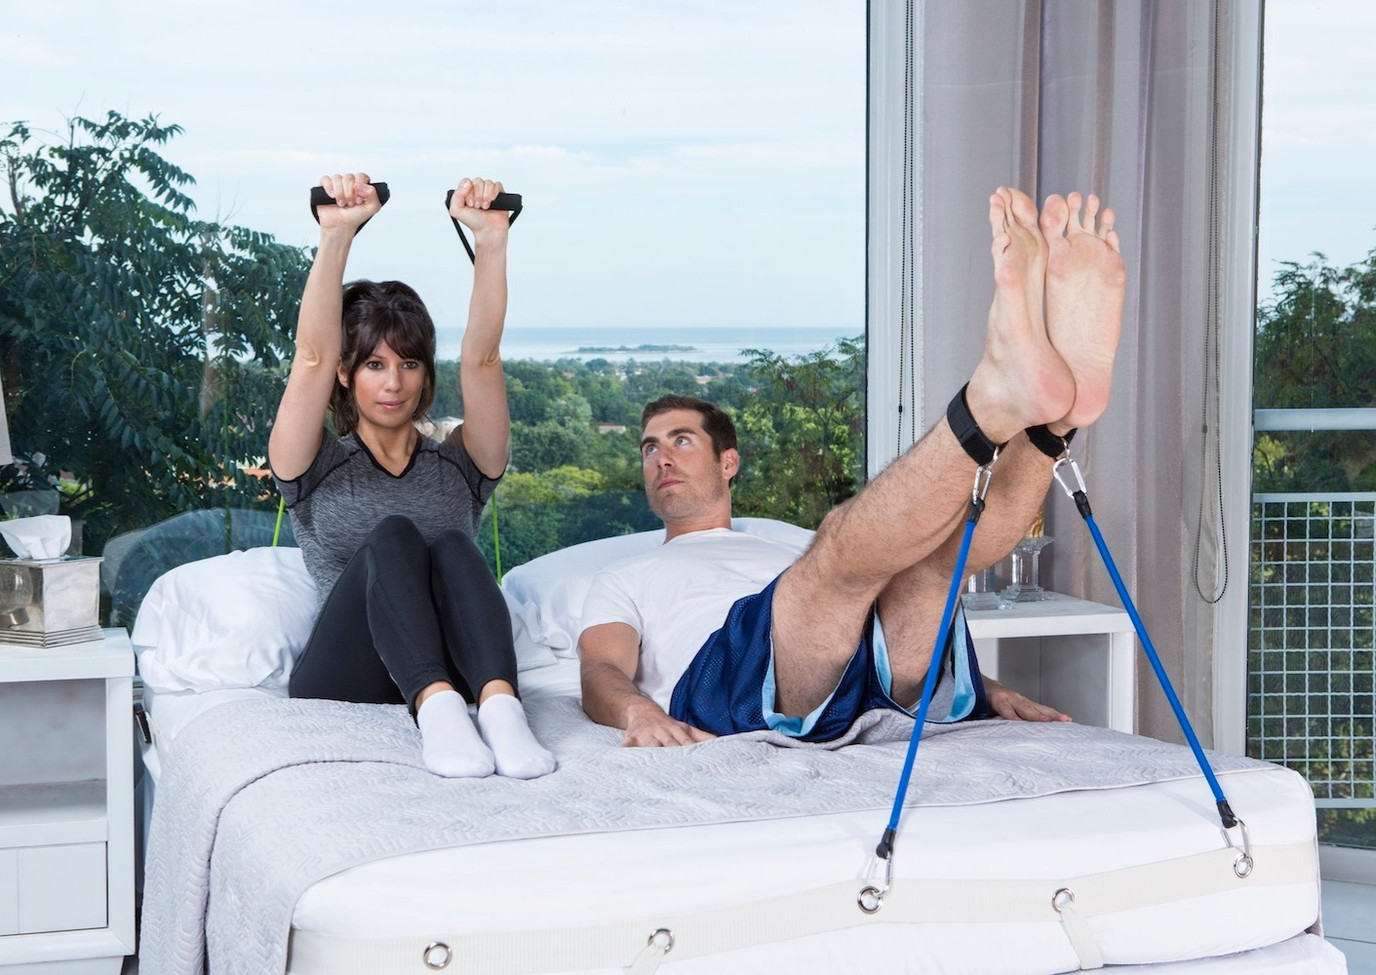 BedGym-exercise-in-bed-couples-workout_e